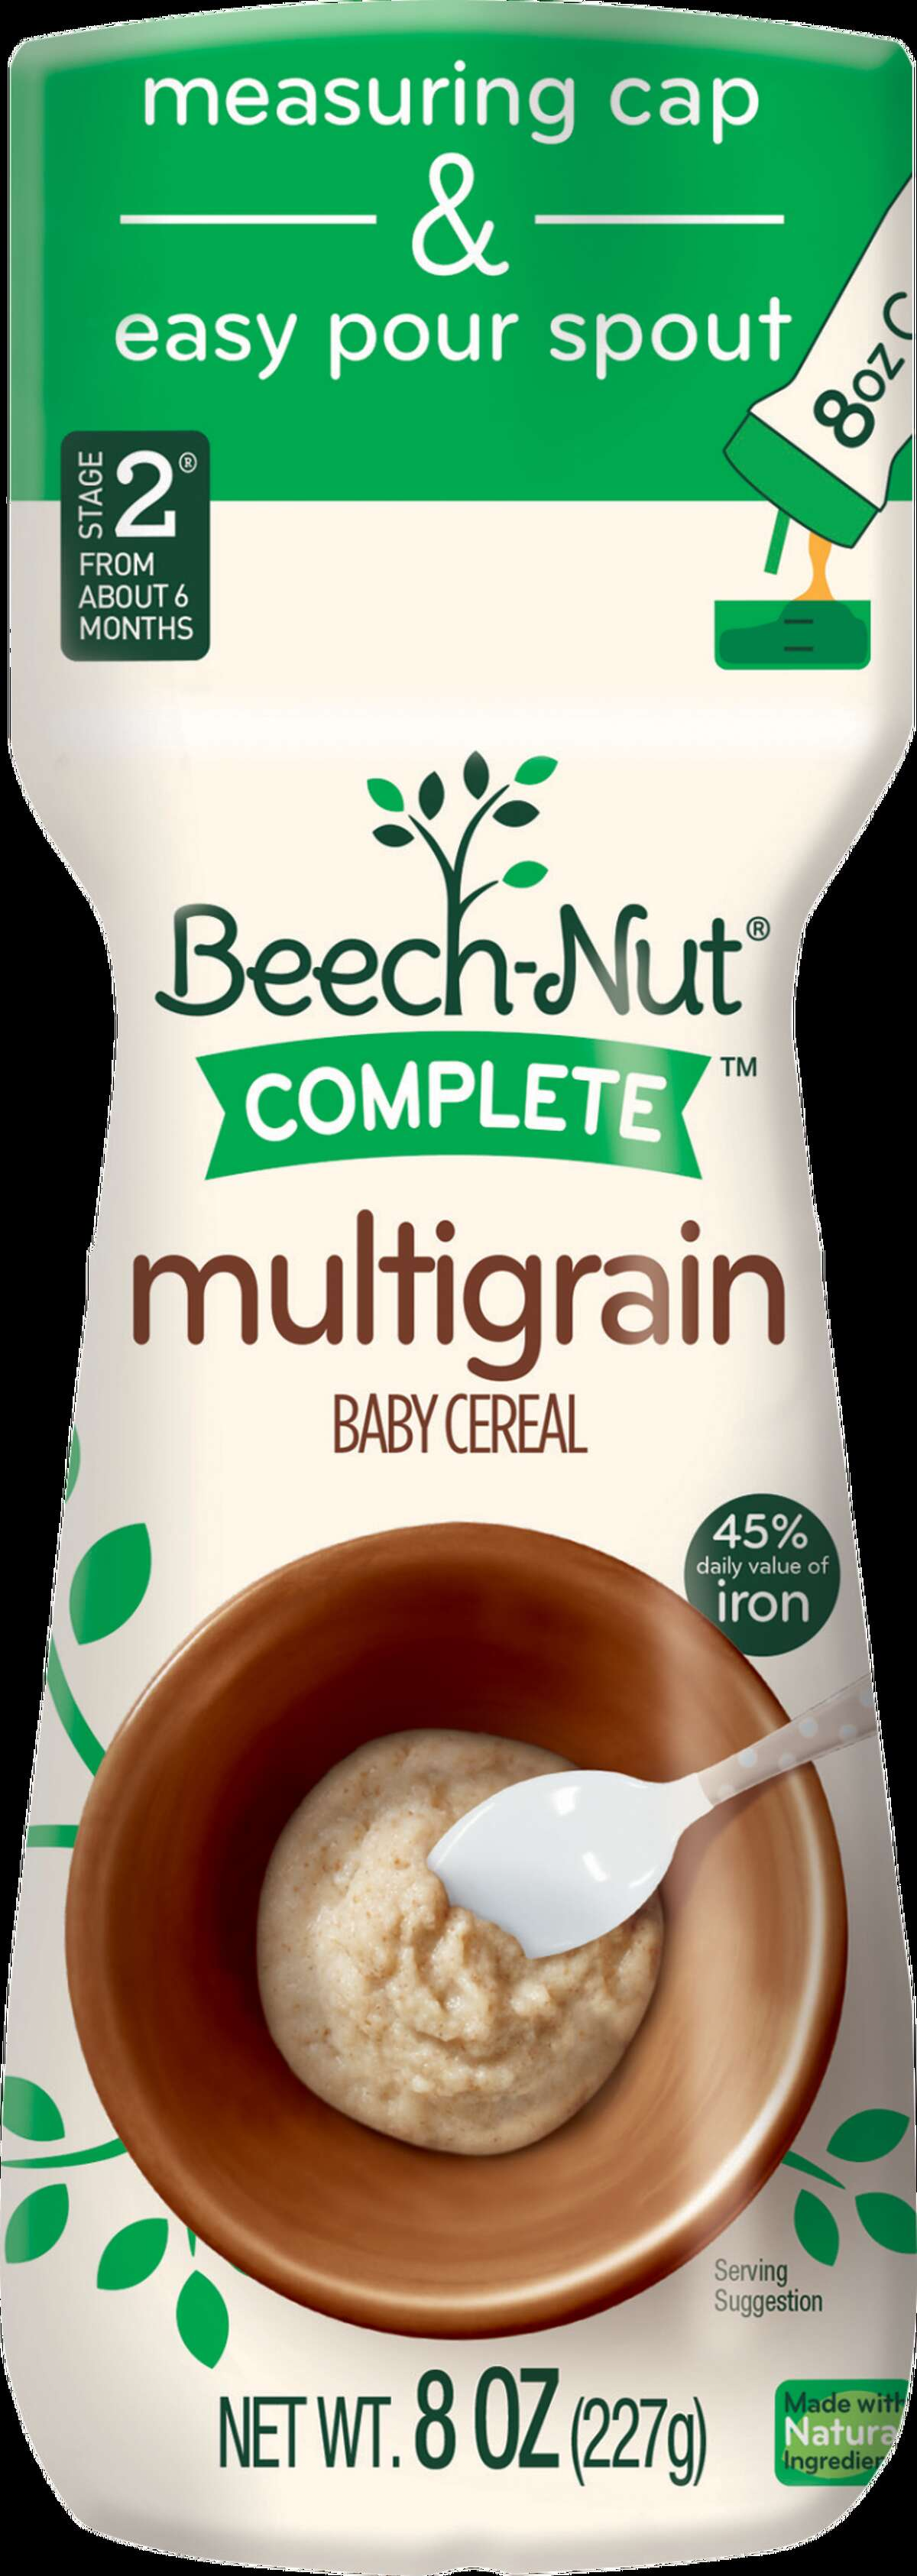 Best baby cereal4. Beech-Nut Stage 2 Multigrain Baby Cereal